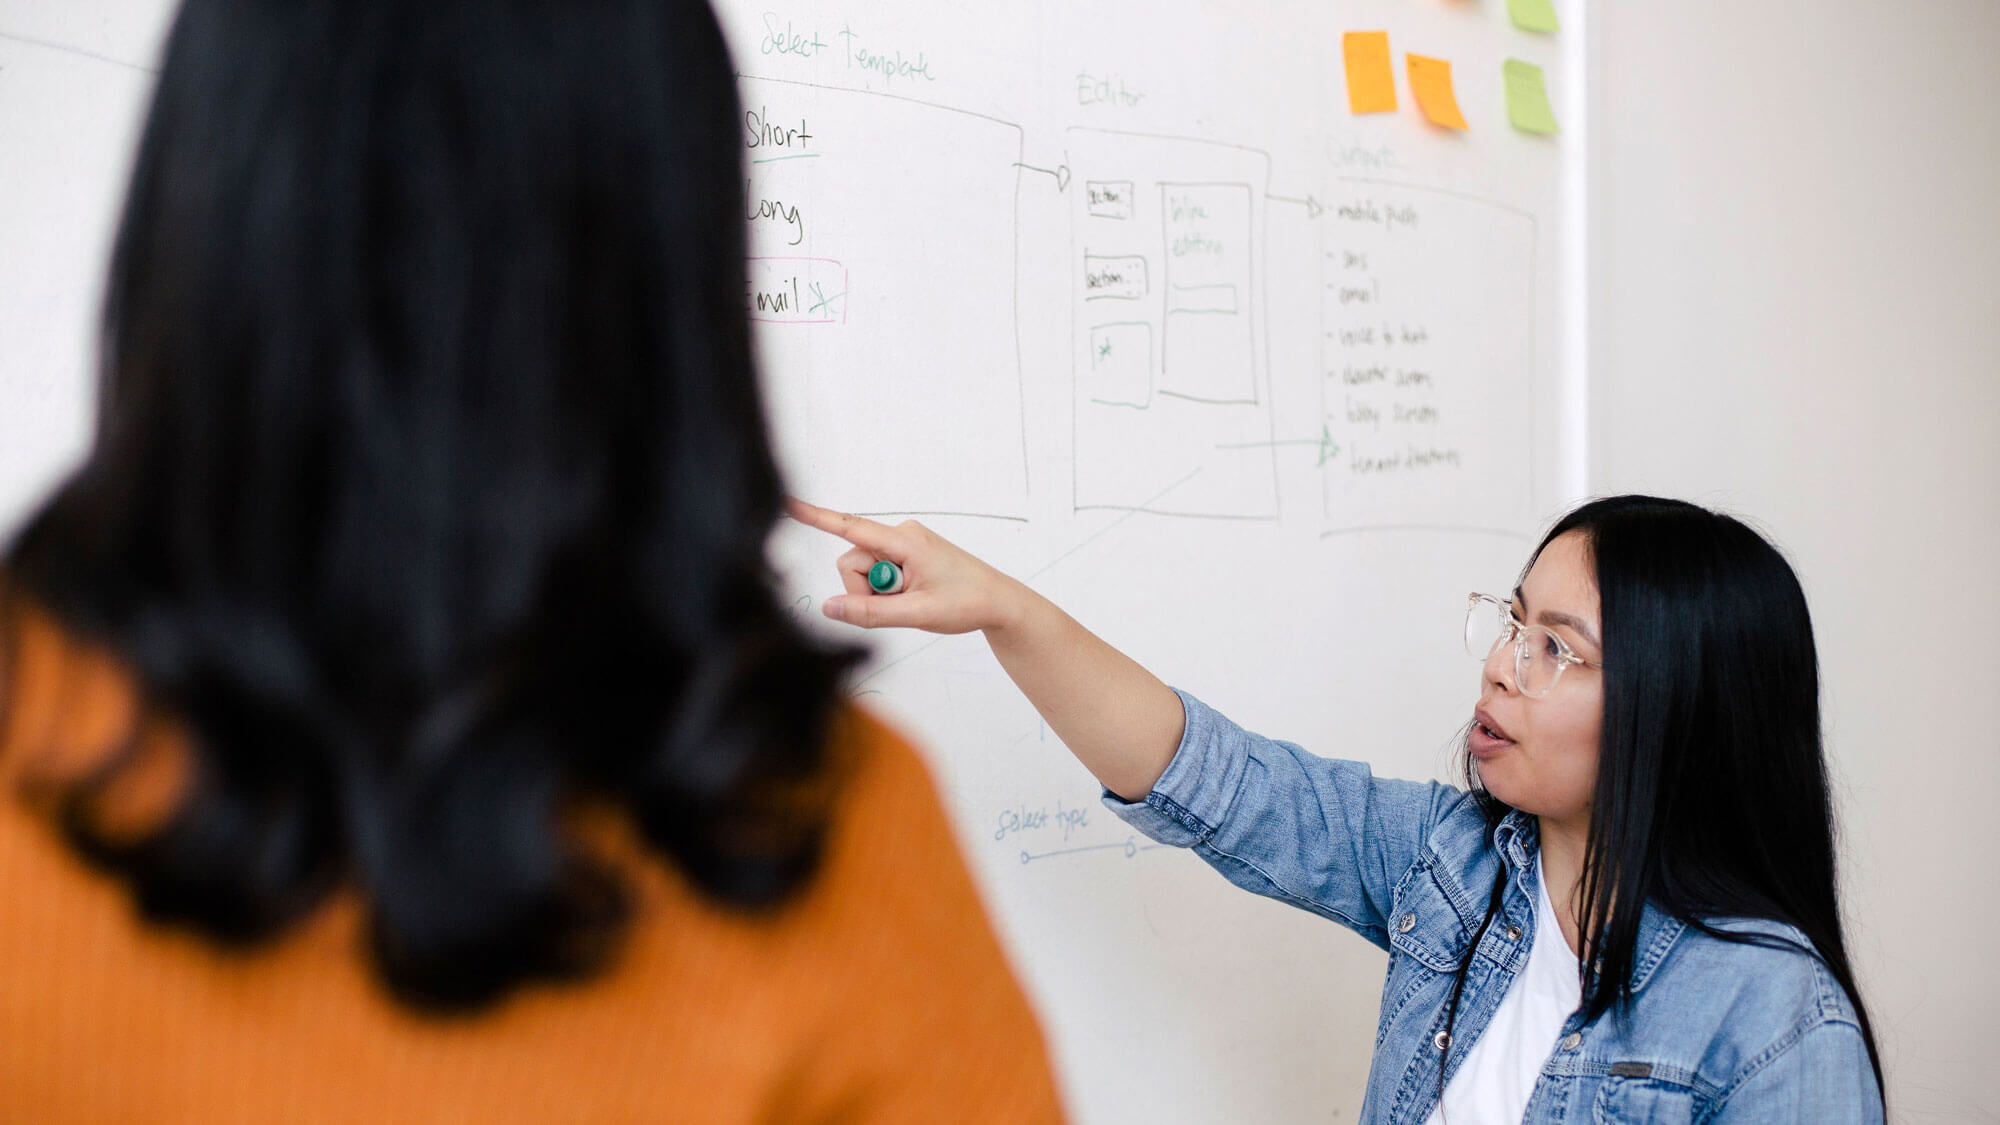 Great innovation managers support and challenge innovators within the organization